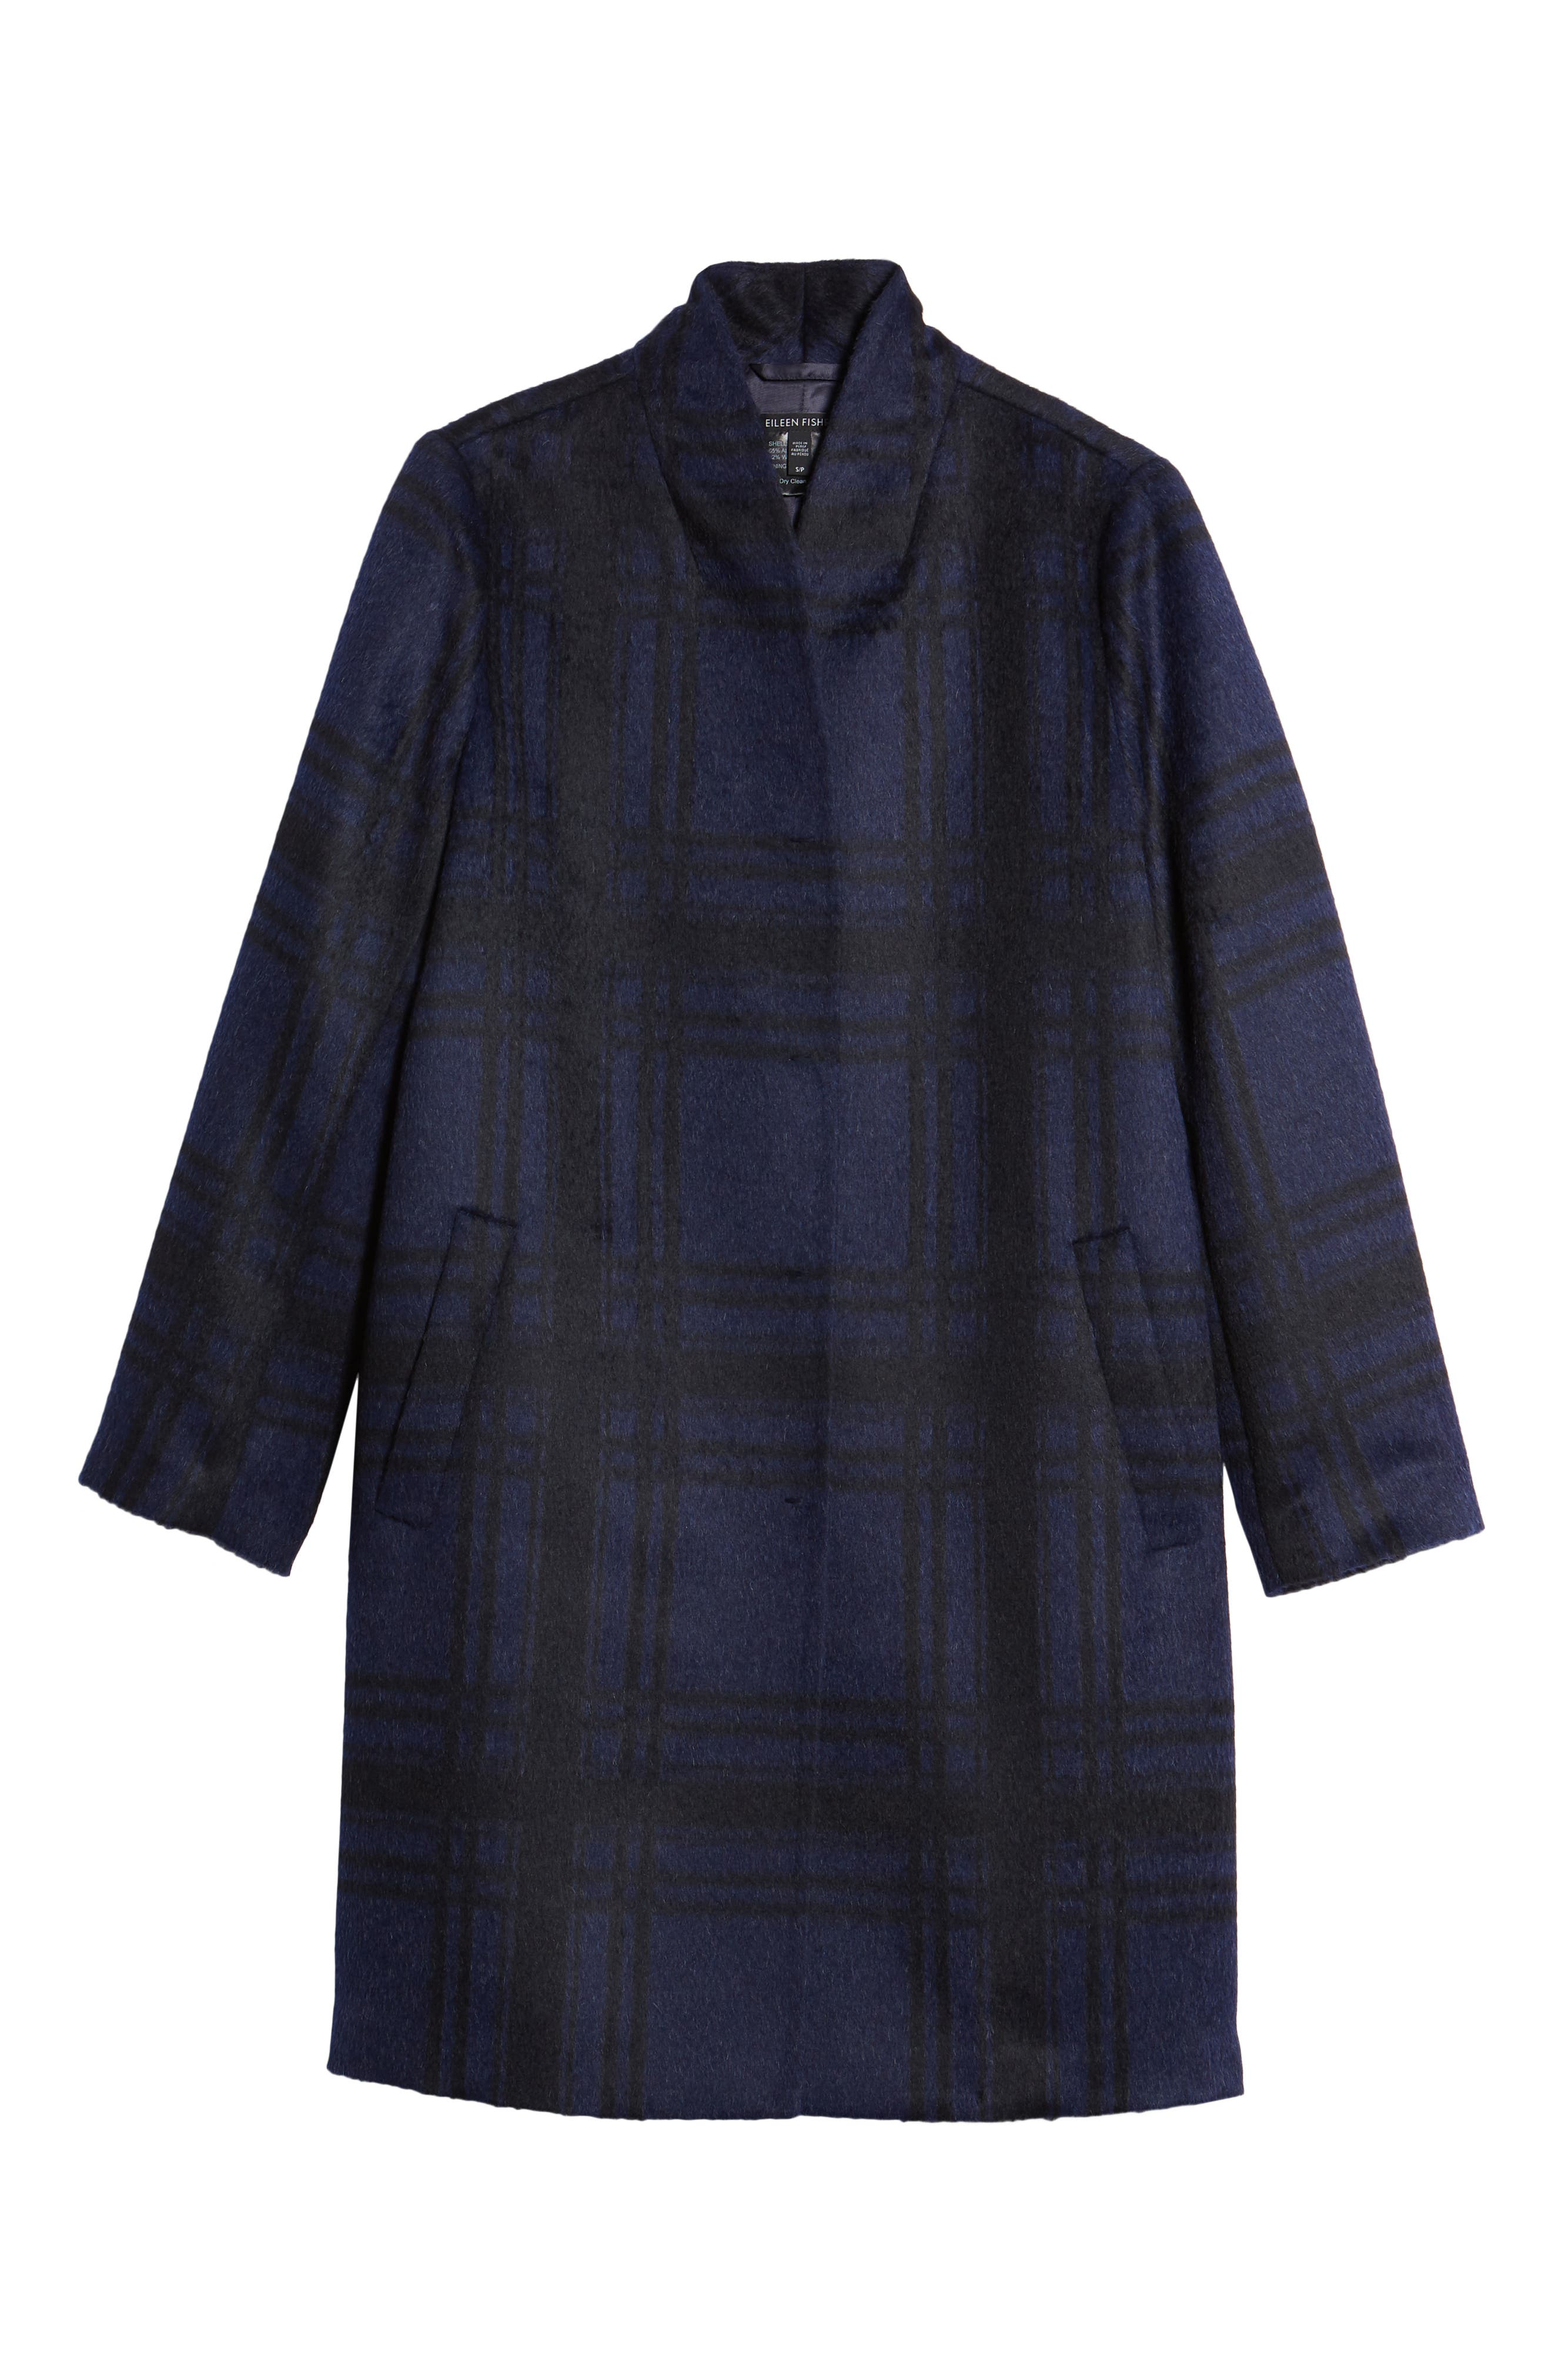 Plaid Alpaca Blend Coat,                             Alternate thumbnail 5, color,                             419